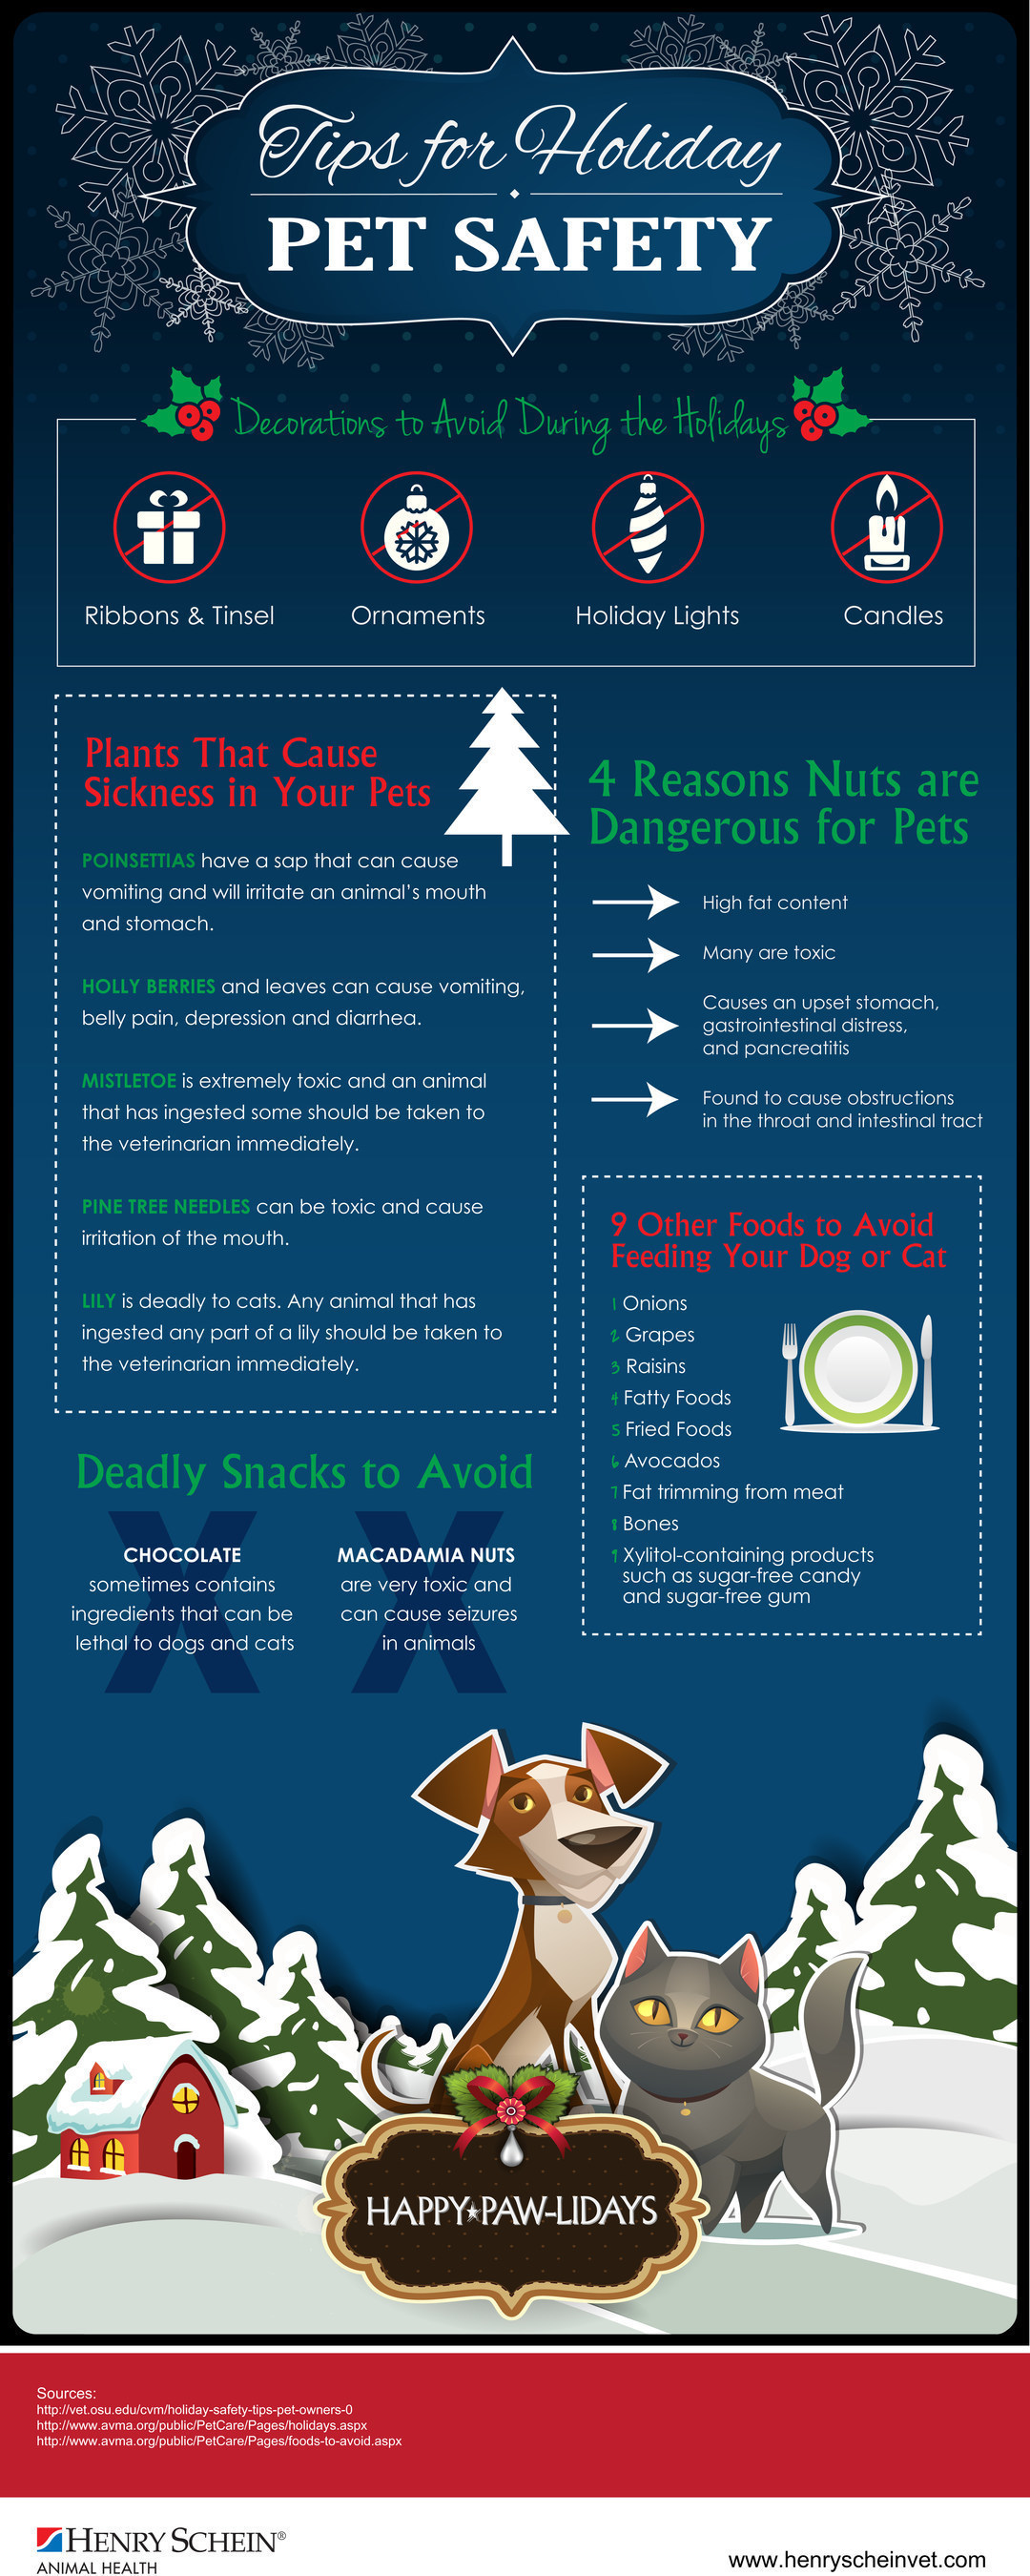 Henry Schein's Tips for Holiday Pet Safety